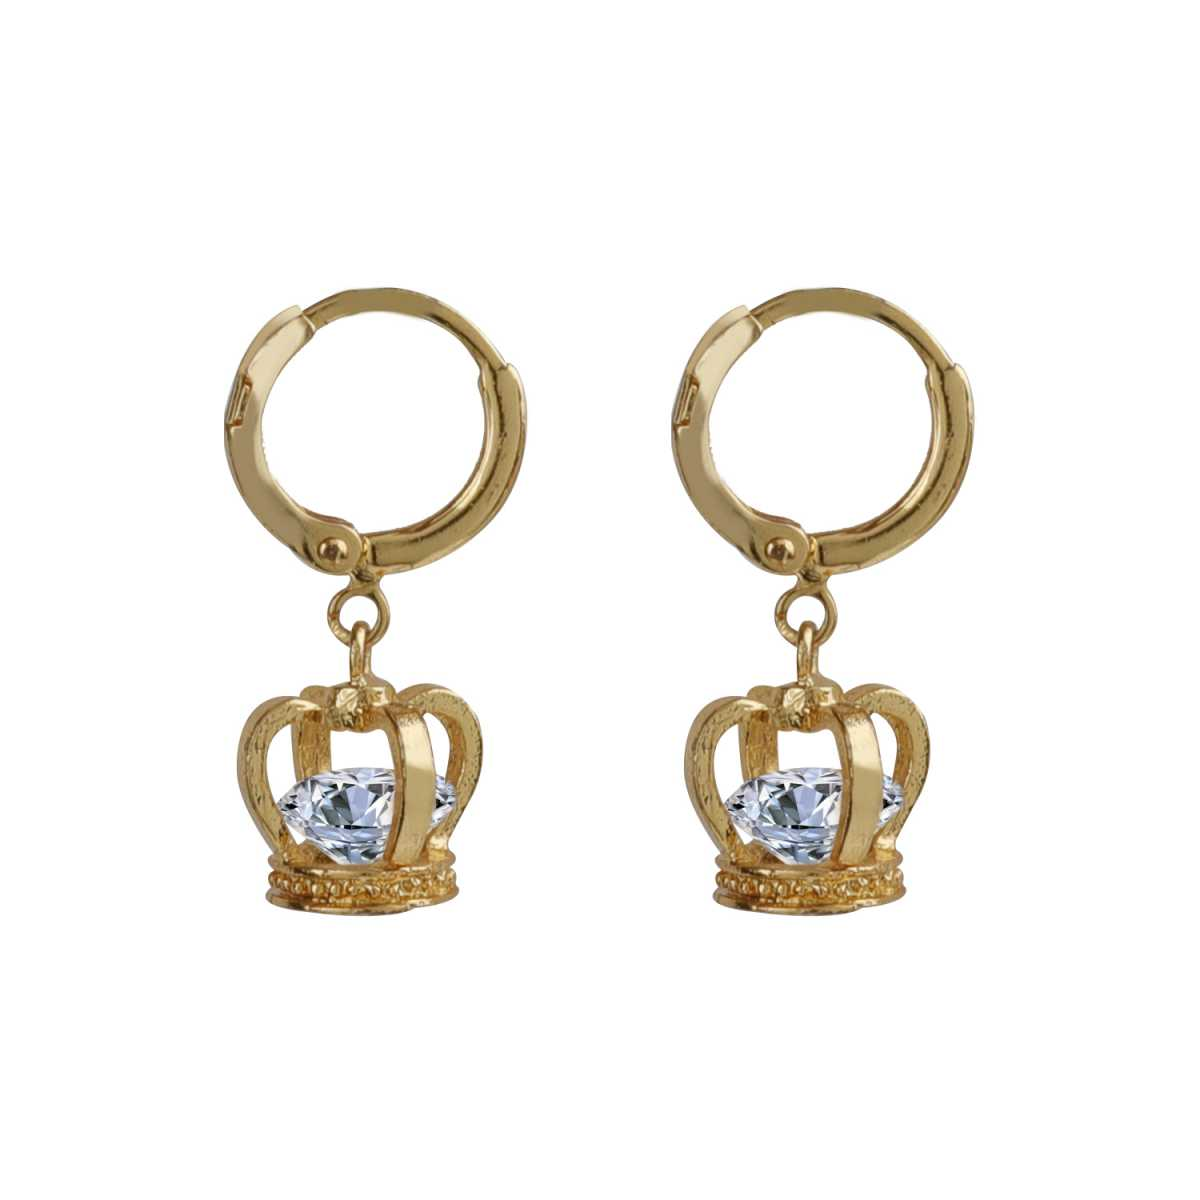 Silver Shine Gorgeous Gold Superb Polished Crown Design Hoop Bali Earring With Diamond For Girl And Women